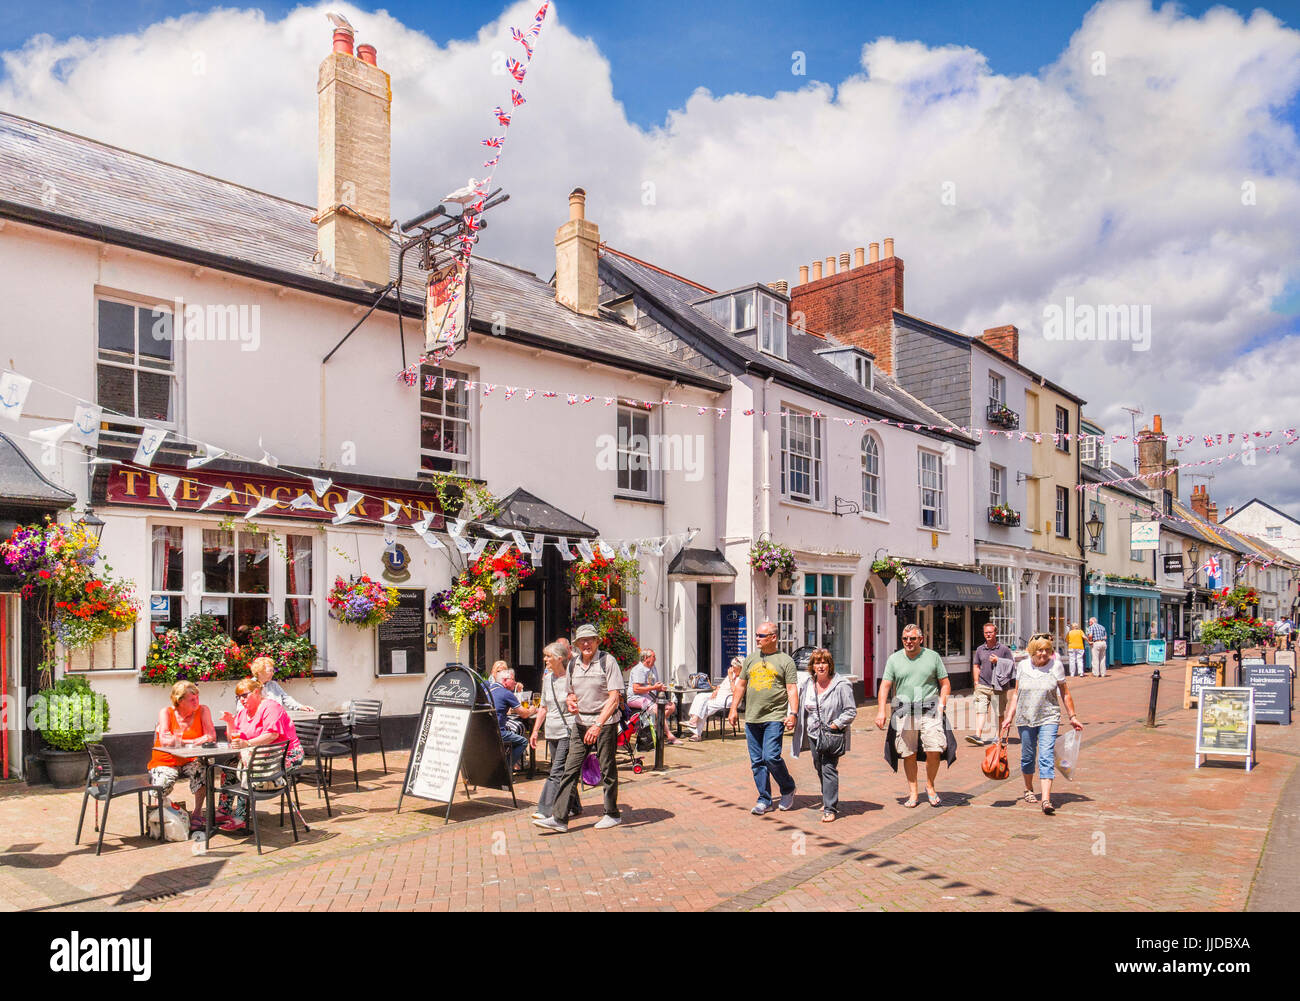 3 July 2017:  Sidmouth, Dorset, England, UK - Shoppers in Old Fore Street, beside The Anchor Inn, on a sunny summer - Stock Image